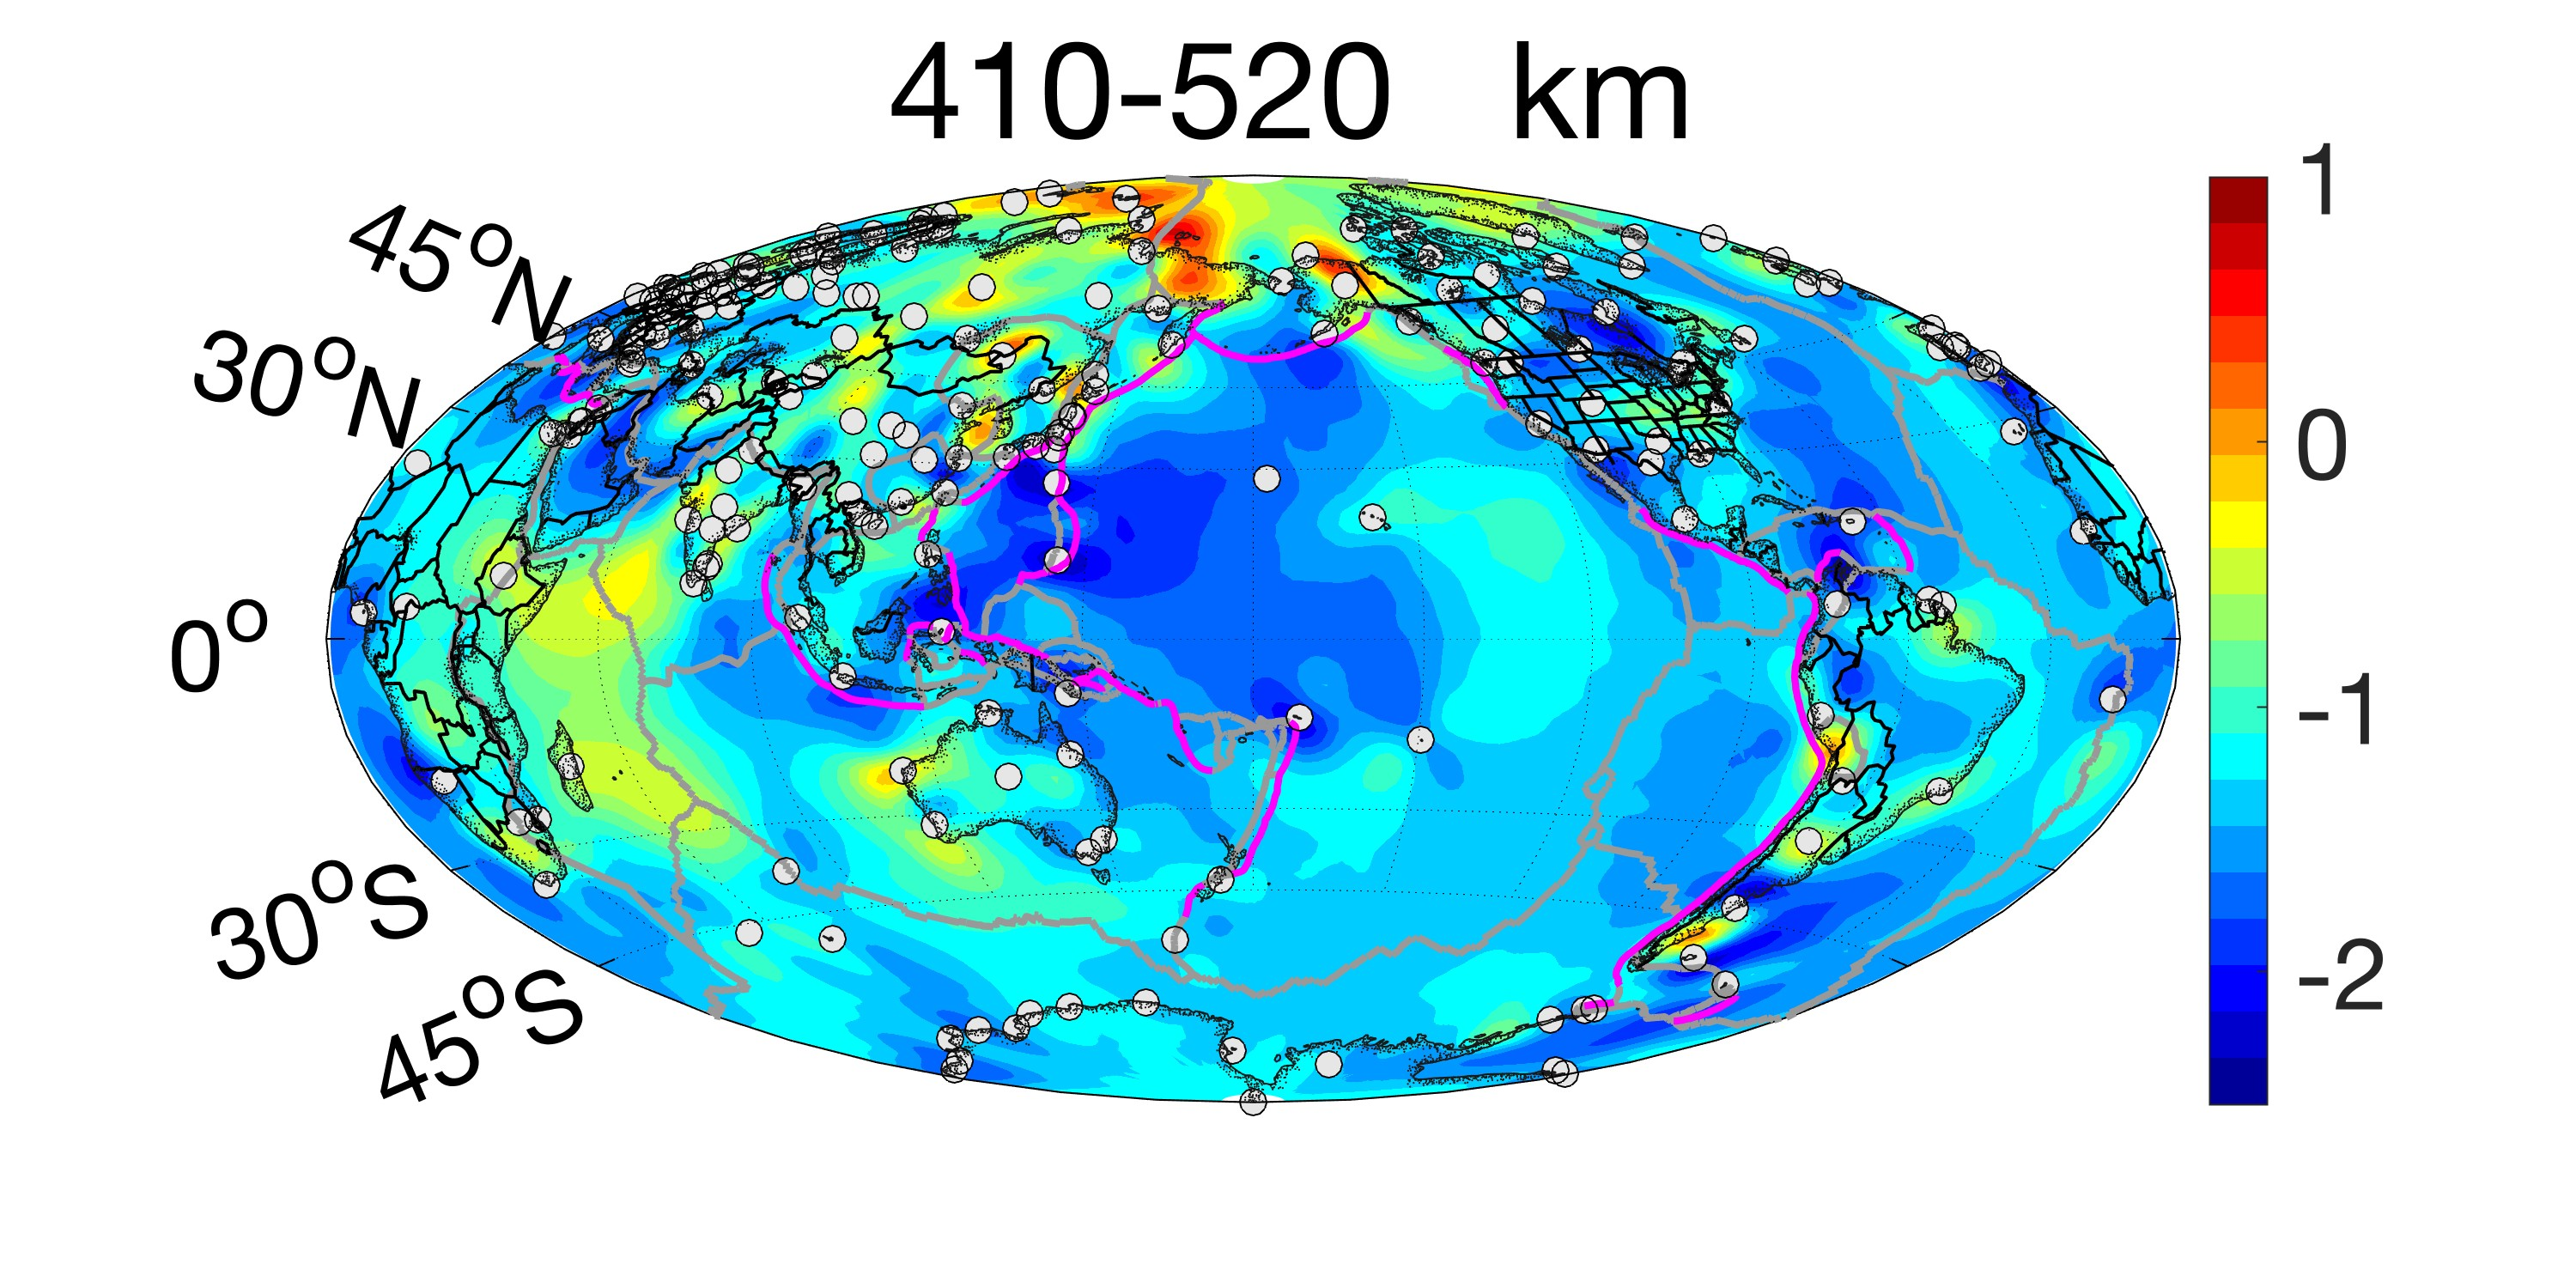 Plot of sigma at the depth of 410 to 520 km.